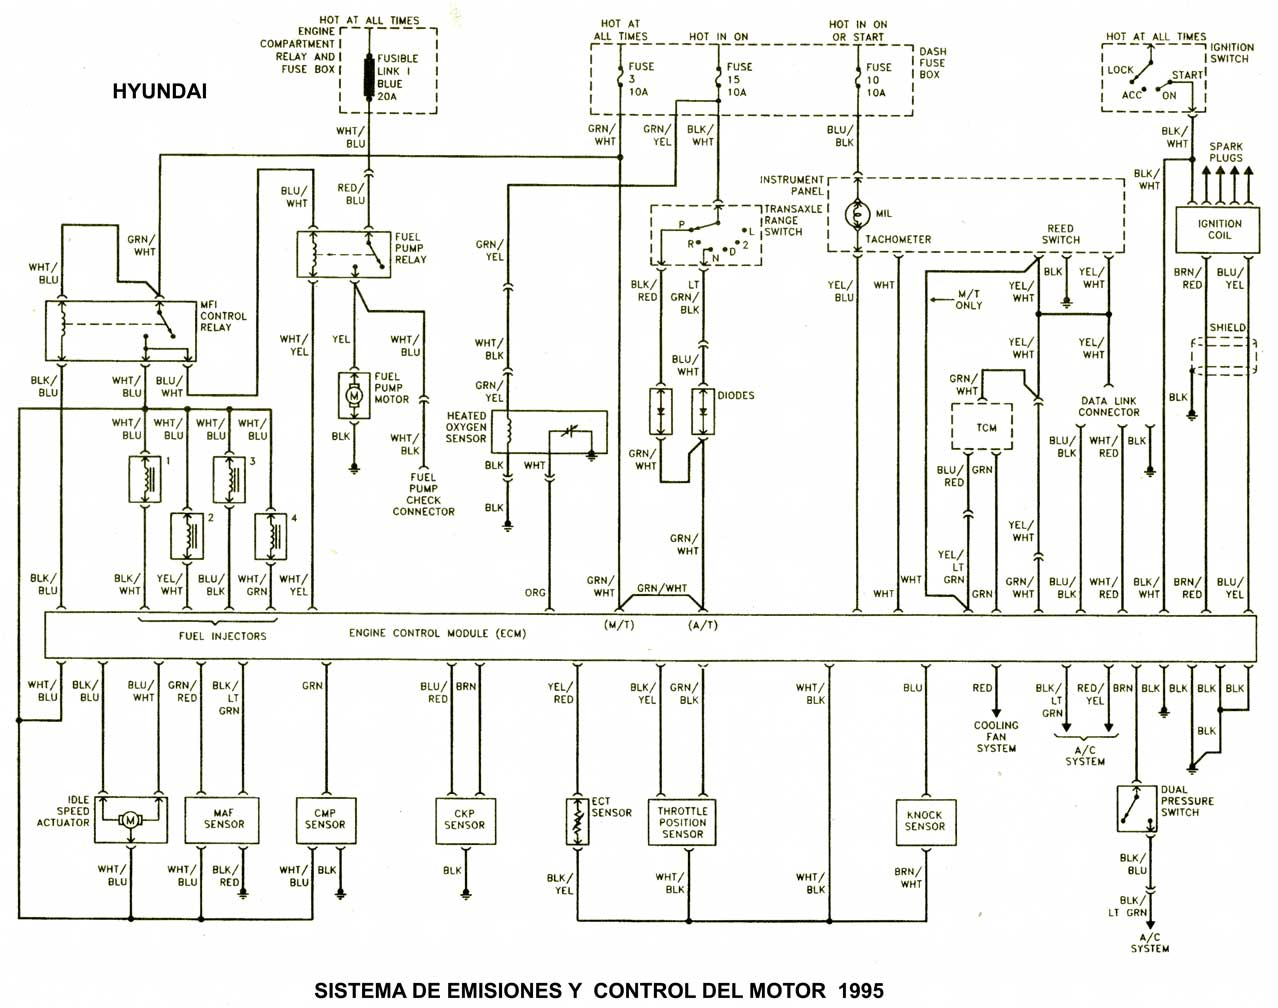 gmc fuse box wiring diagram 1985 serra 1500  location